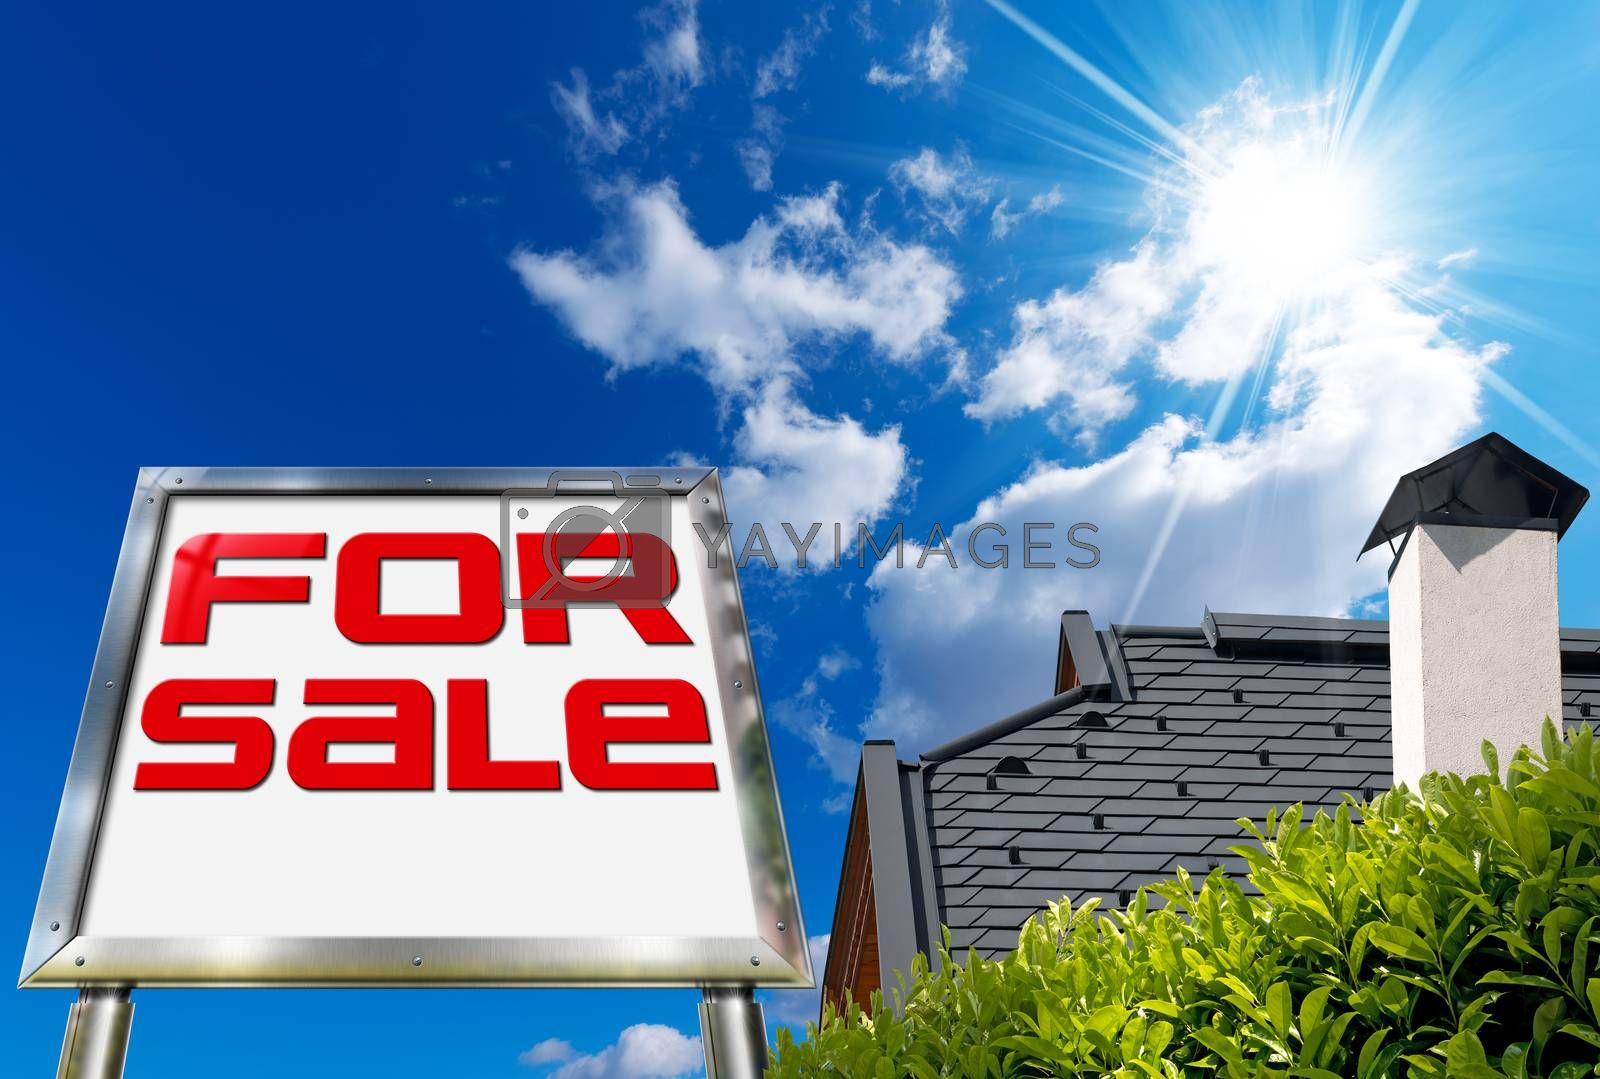 House For sale - Big Chrome Billboard by catalby